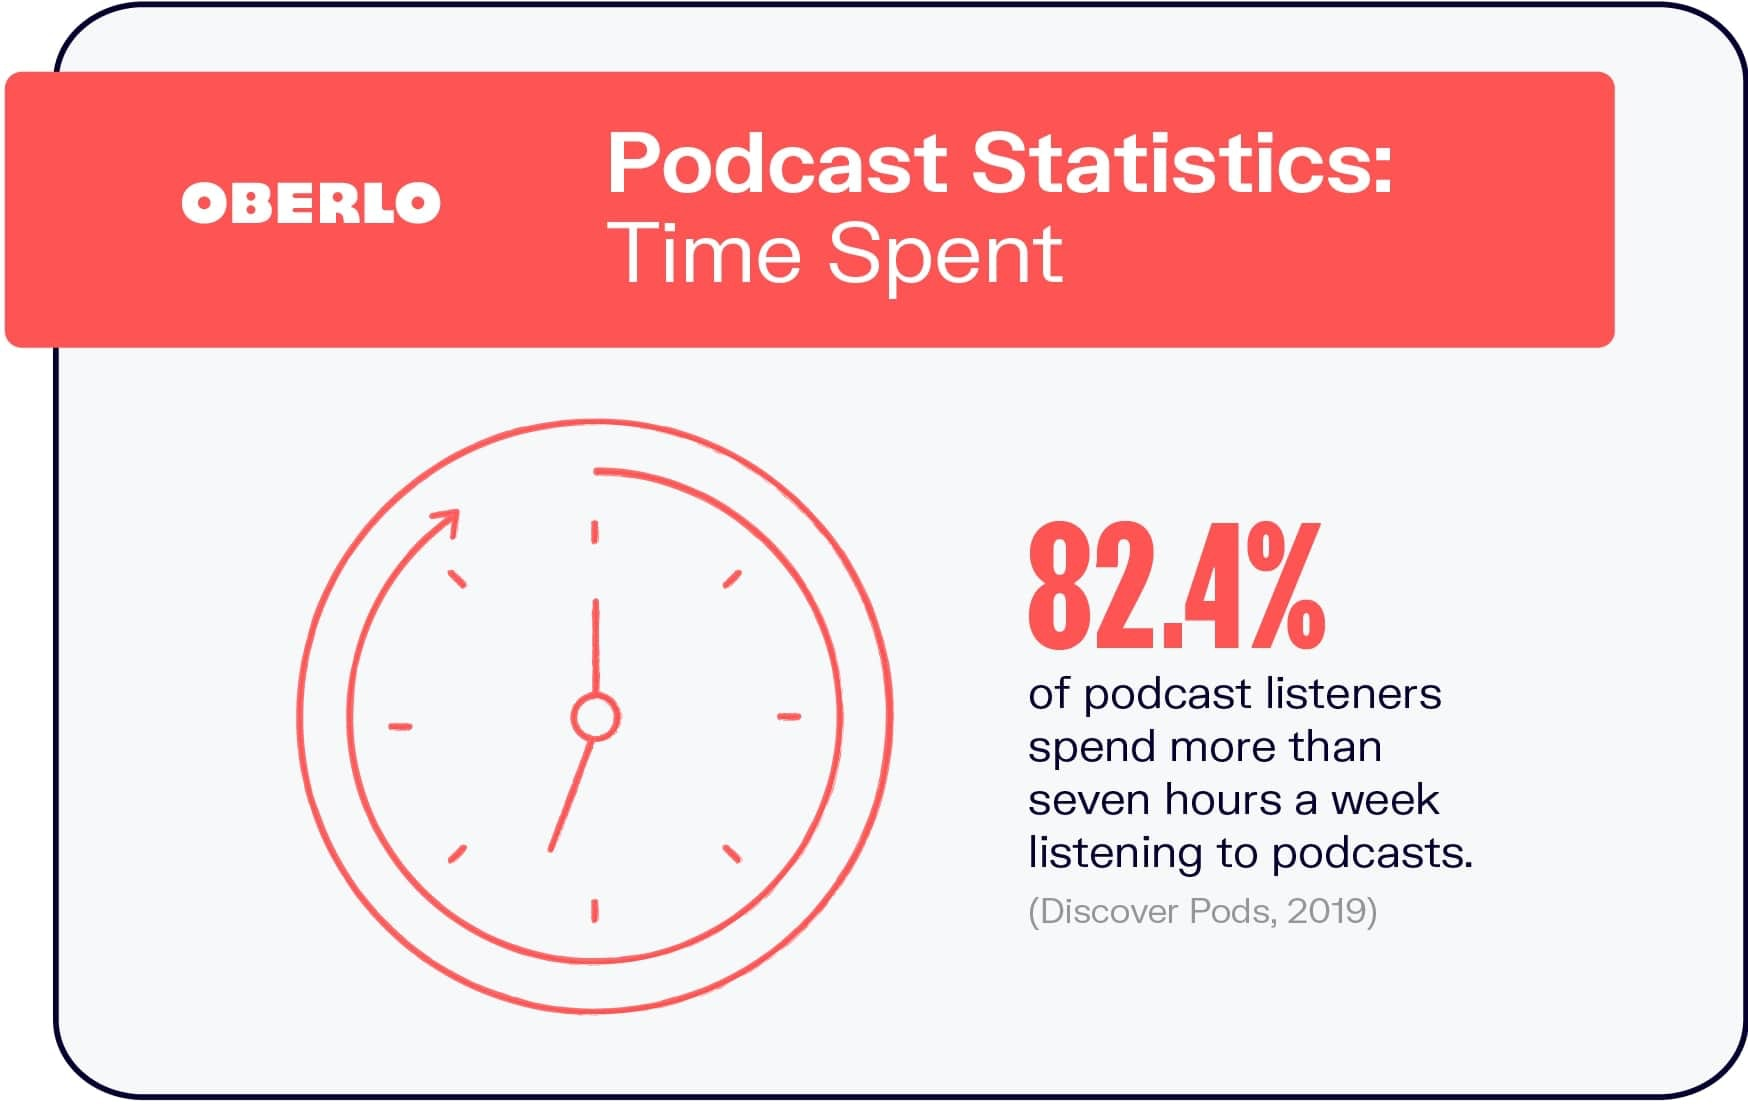 Podcast Statistics: Time Spent